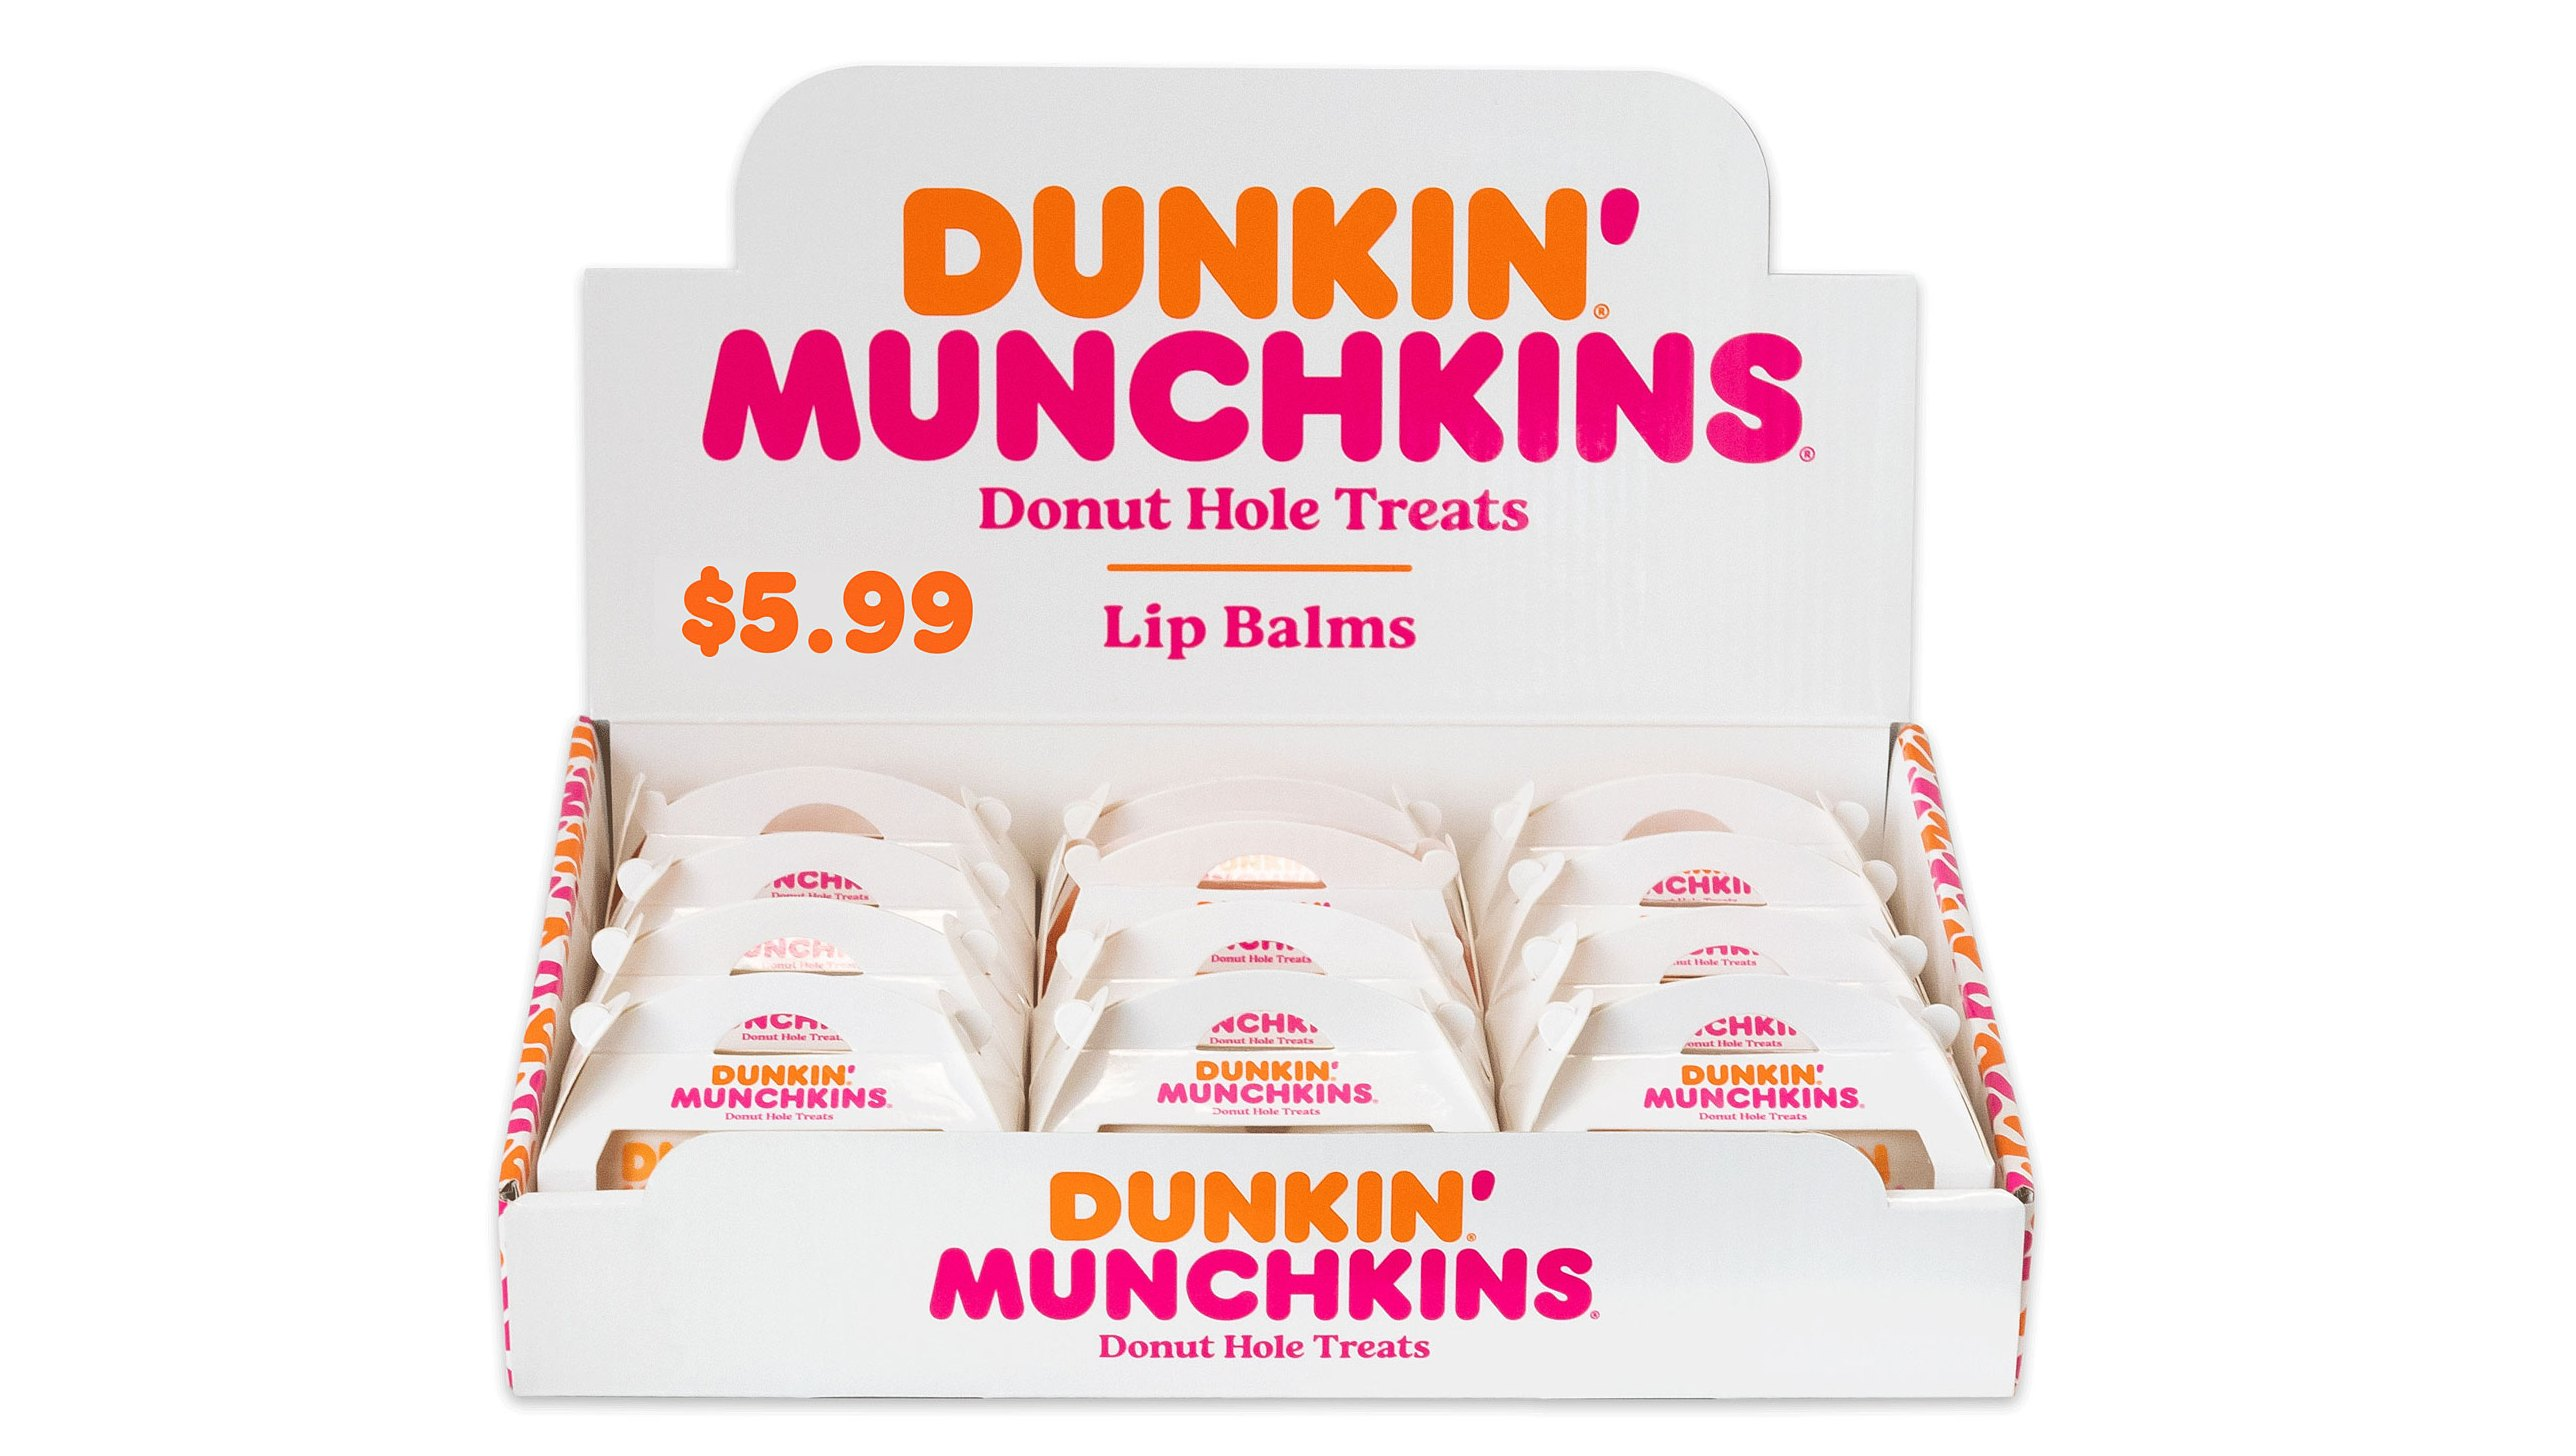 Dunkin Munchkins Donut Hole Treats Lip Balm